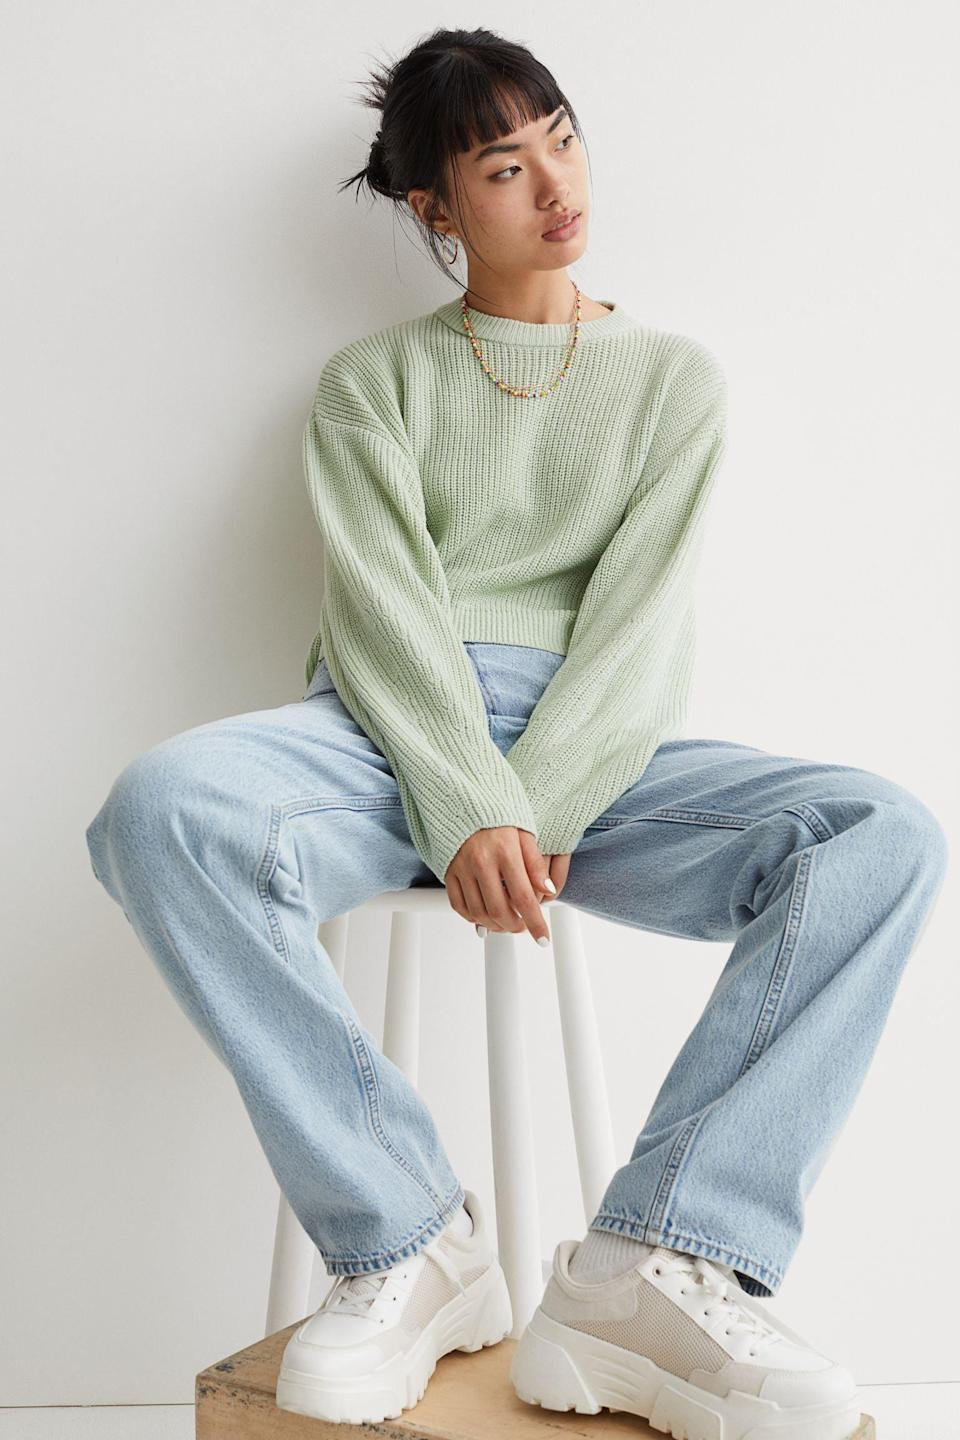 <p>This <span>Rib-knit Sweater</span> ($18) styled with your favorite denim jeans? The most effortless cool and comfortable everyday look.</p>